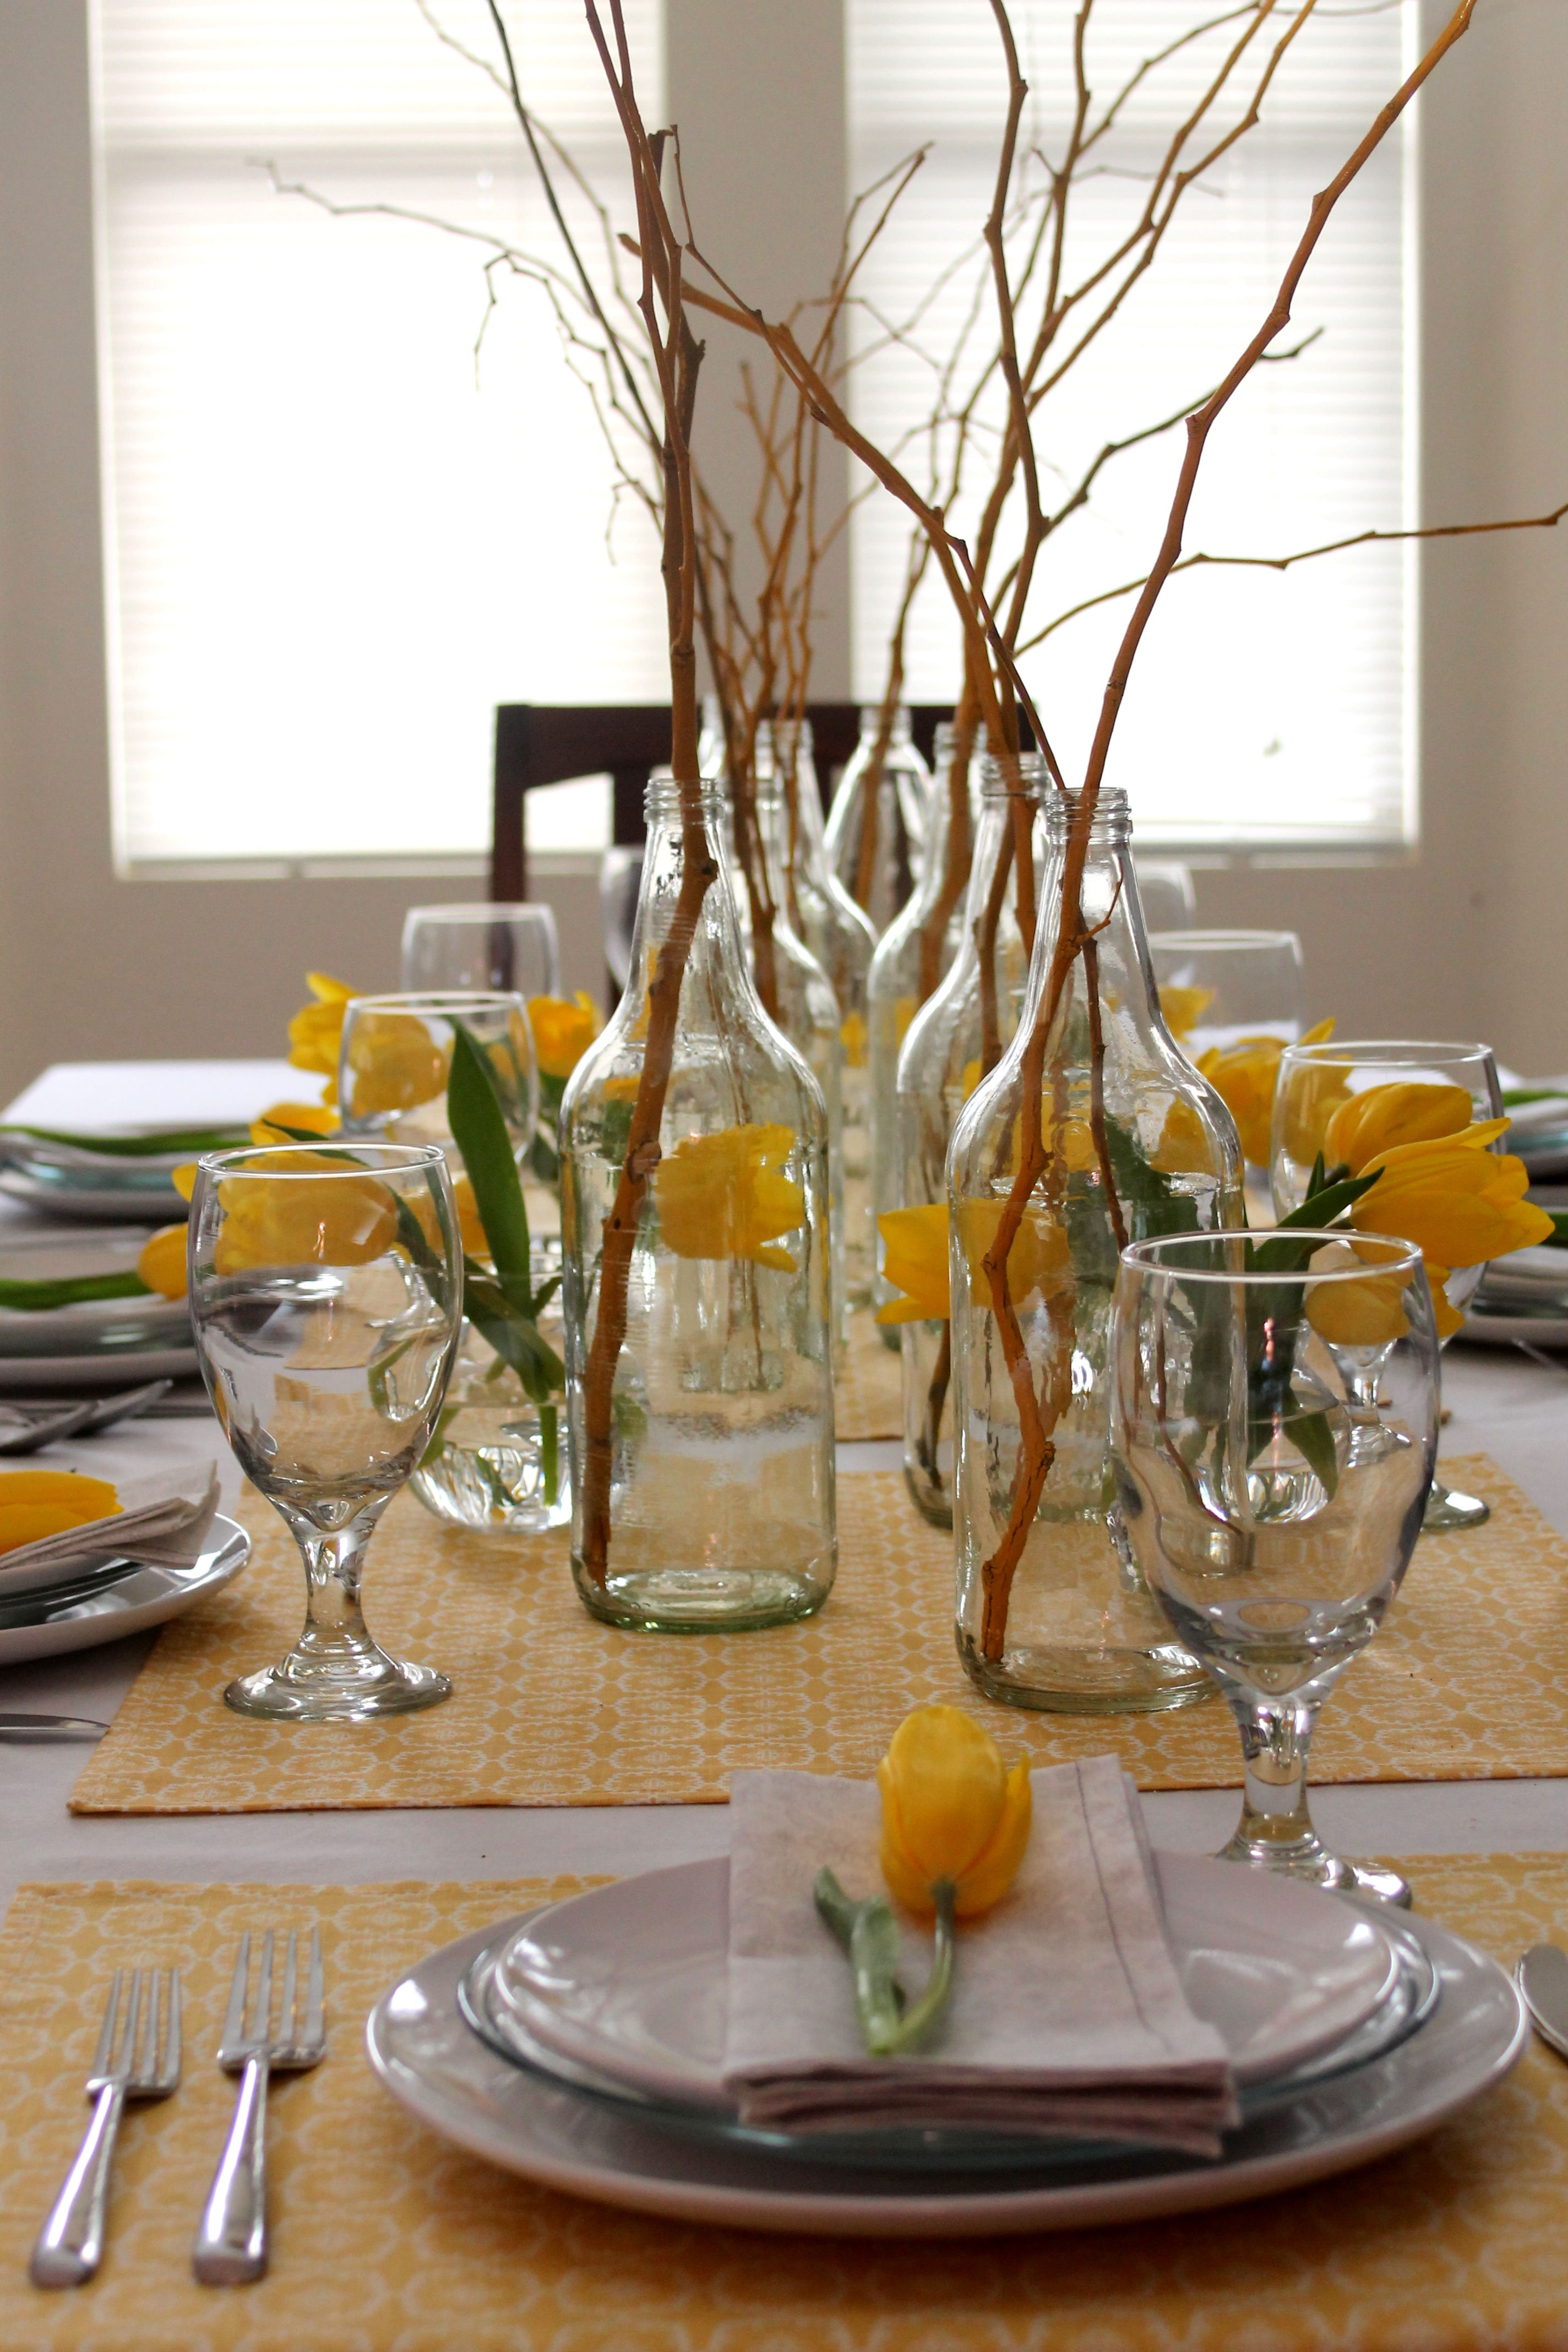 Yellow Branches Dining Table Centerpiece Table Centerpieces For Home Dinner Table Centerpieces